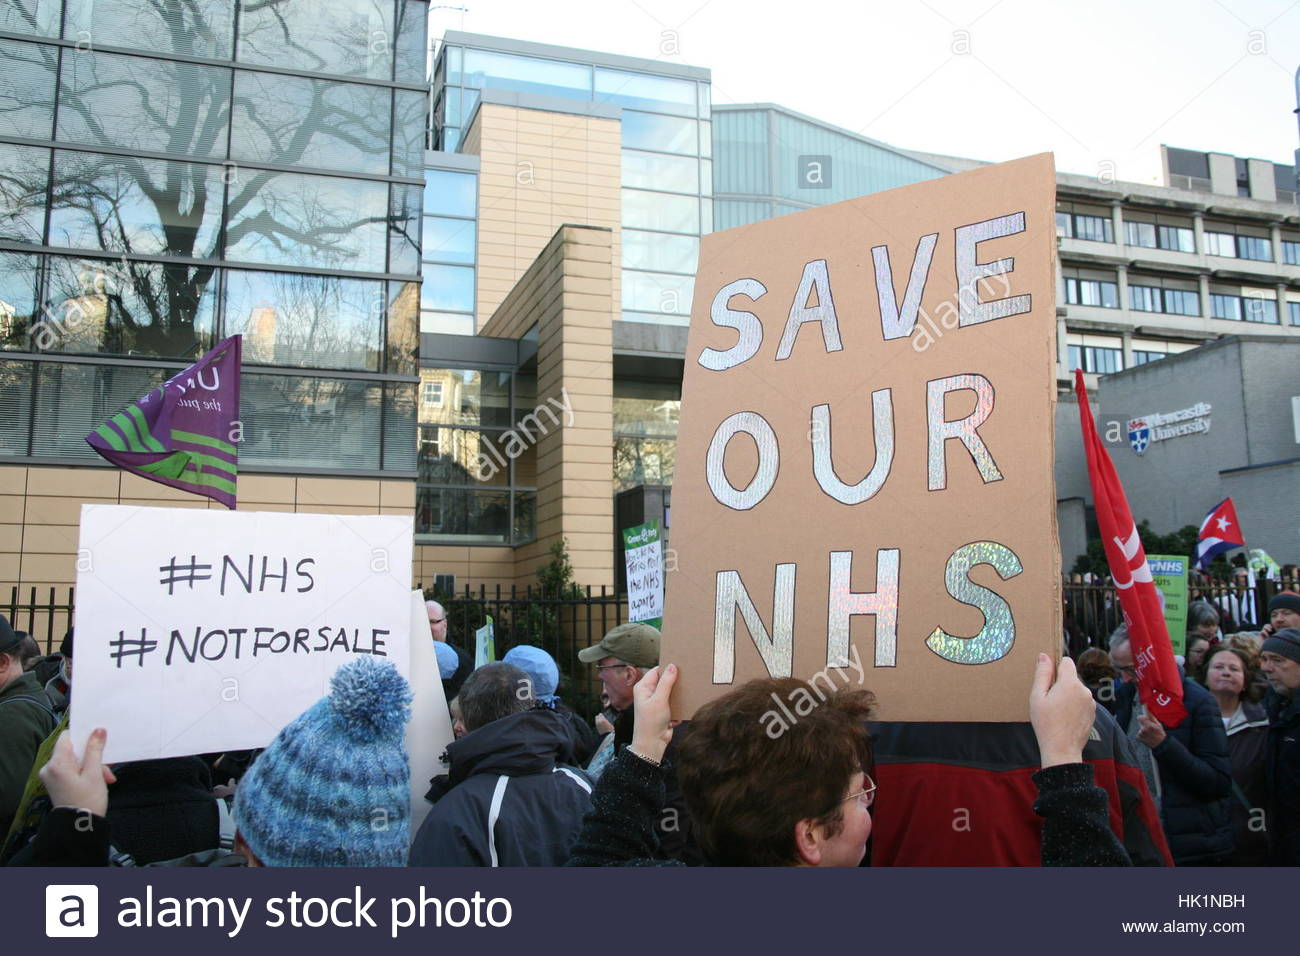 Newcastle, UK. 4th Feb, 2017. Protesters hold signs during a demonstration to defend National Health Service (NHS) - Stock Image